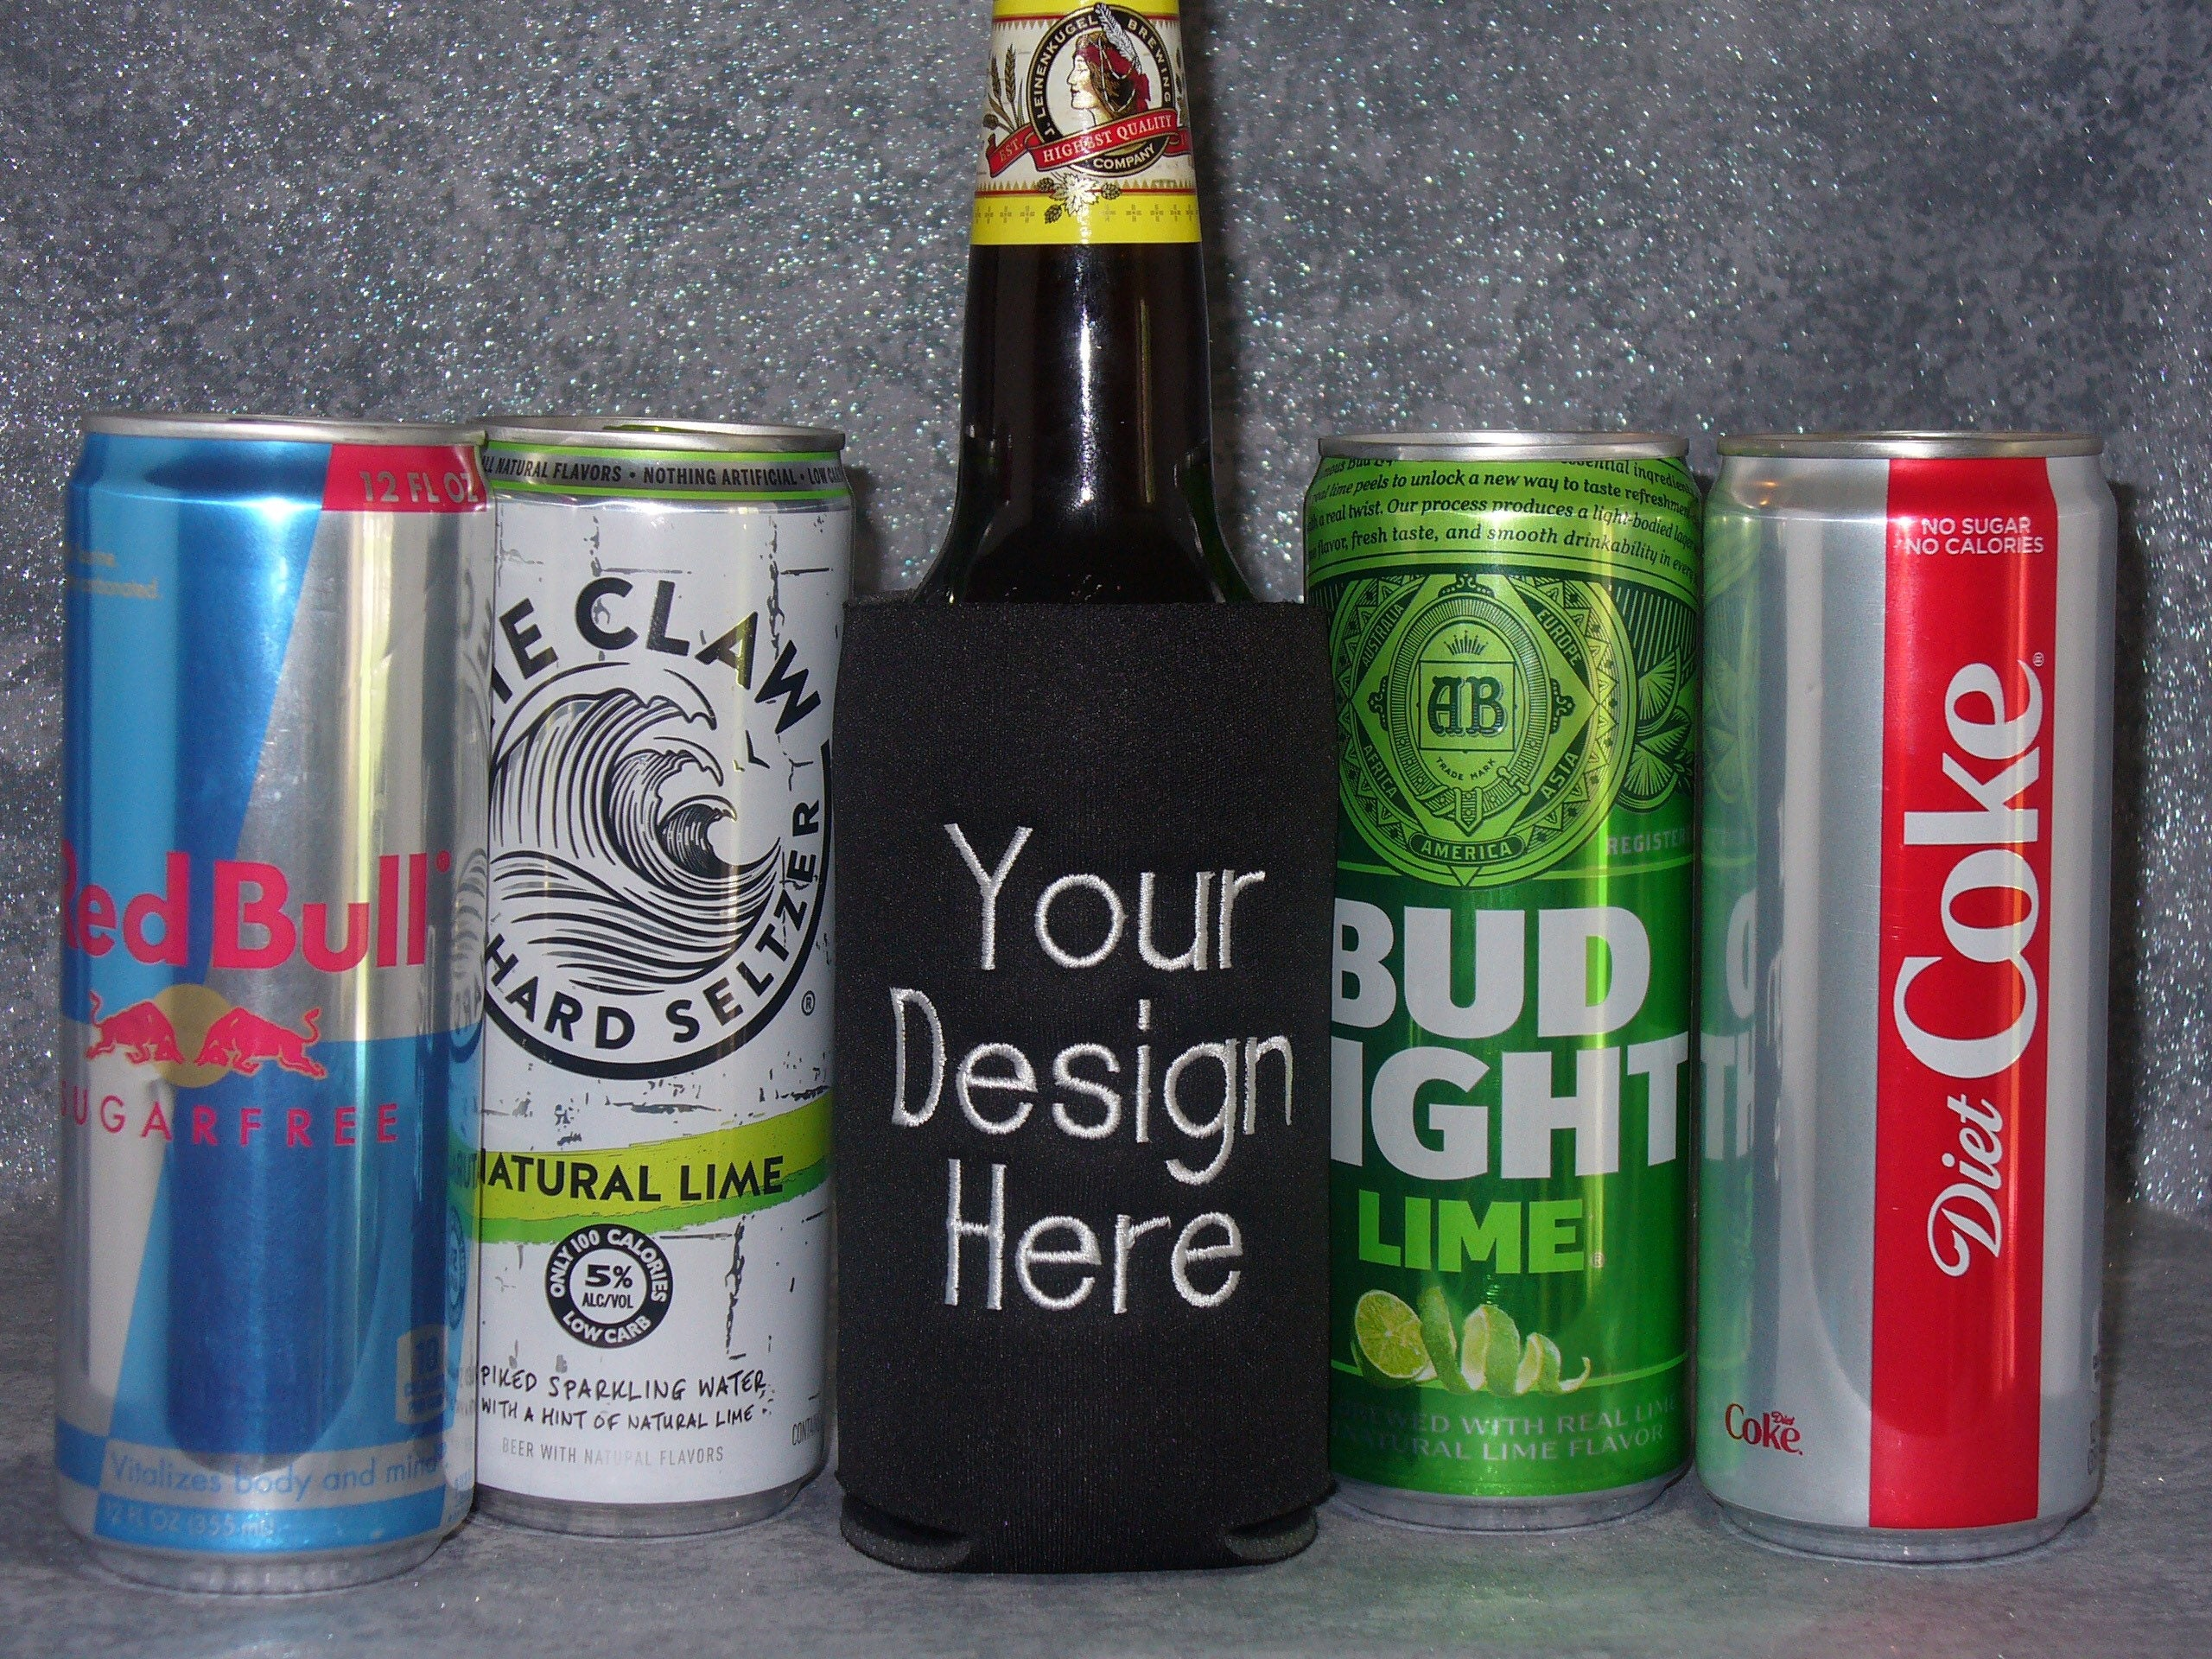 Ask Lh How Much Booze Do I Need For My Wedding: I Do Crew, Wedding Cozies, Wedding Gifts, Beer Bottle Cozy